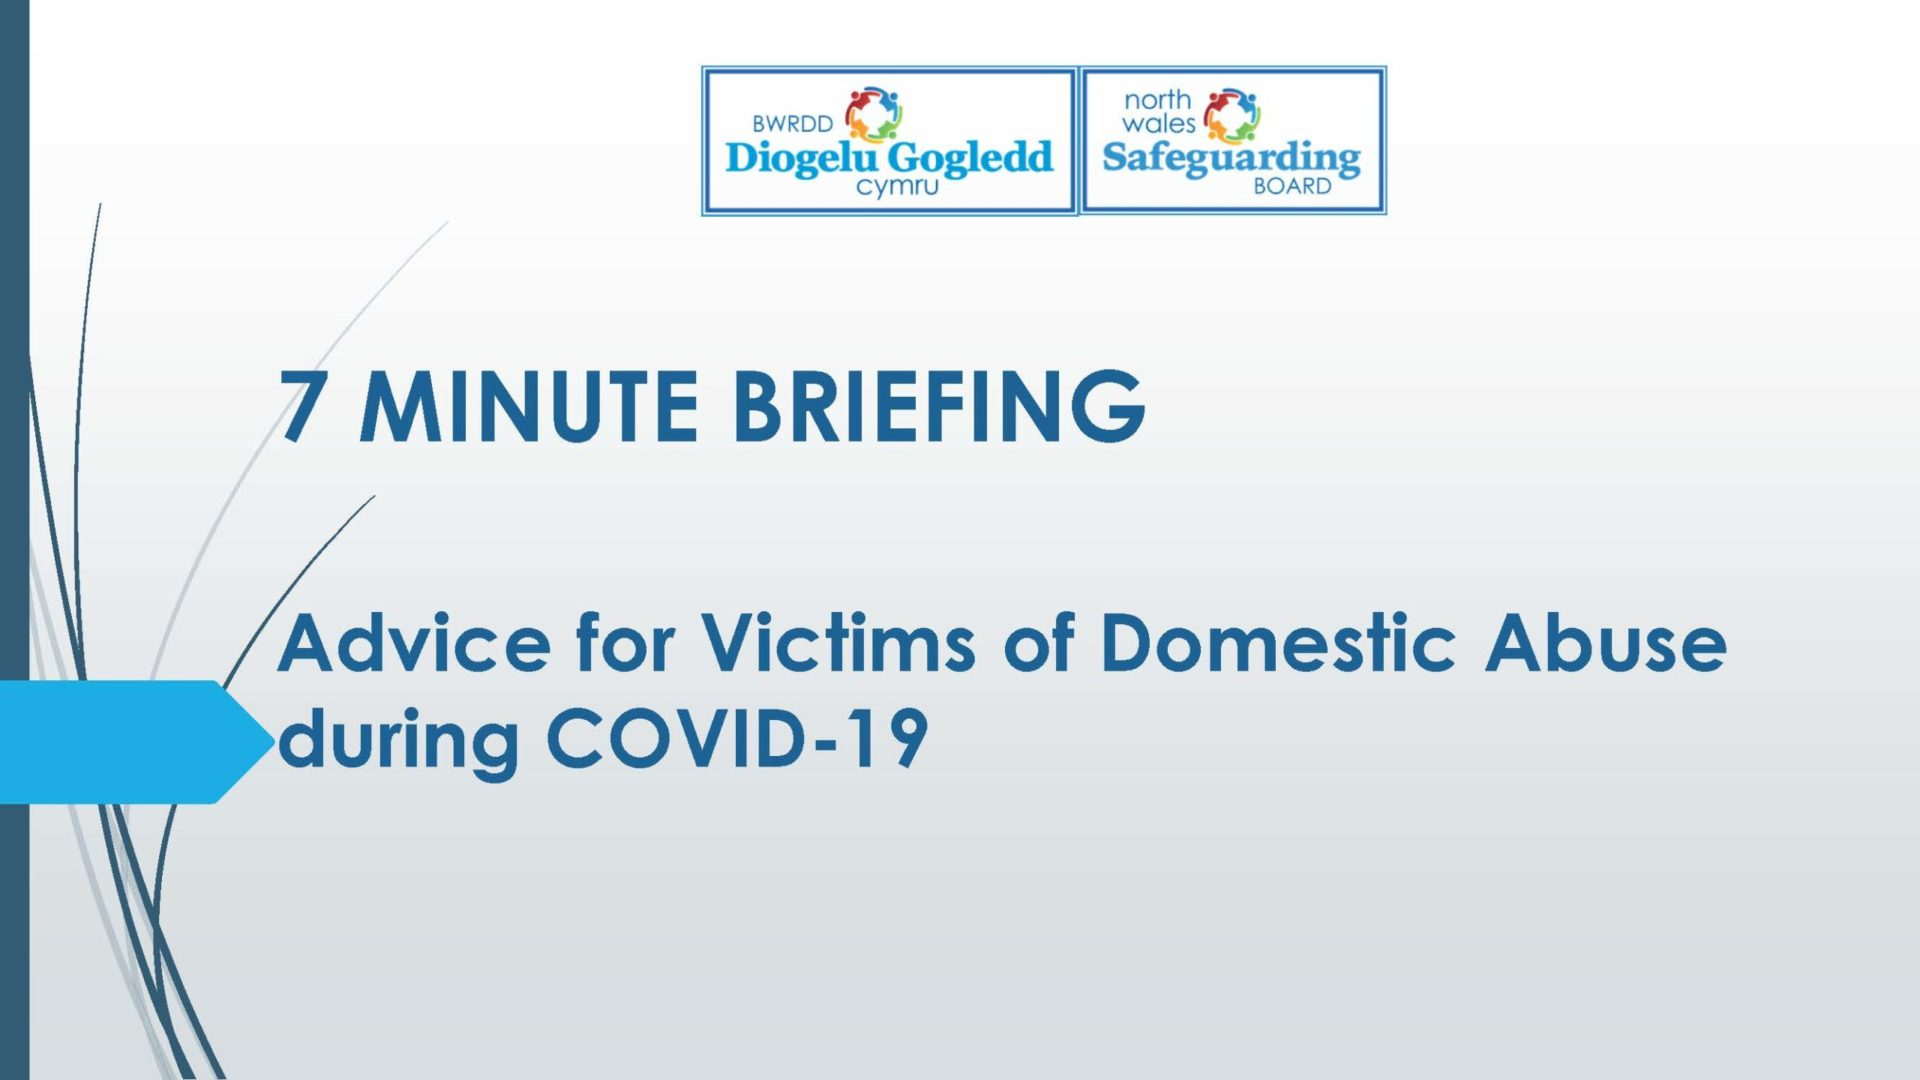 Advice for Victims of Domestic Abuse